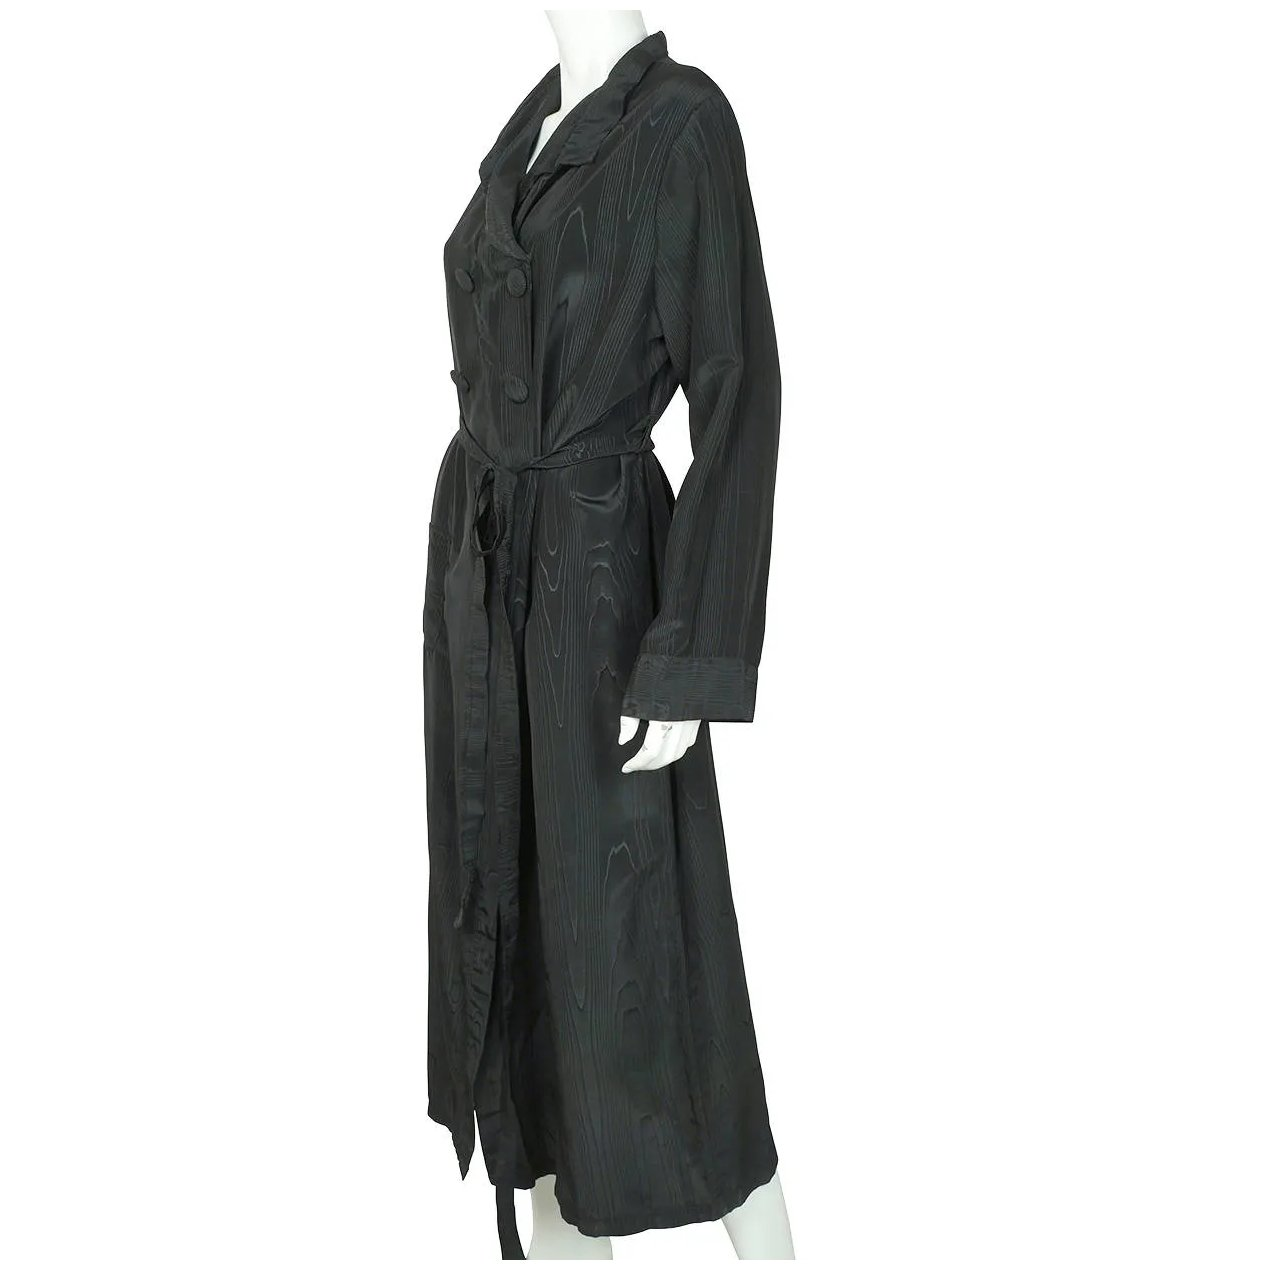 Vintage 1930s Dressing Gown Black Moire Silk Lounging Robe Ladies Size Poppy S Vintage Clothing Ruby Lane